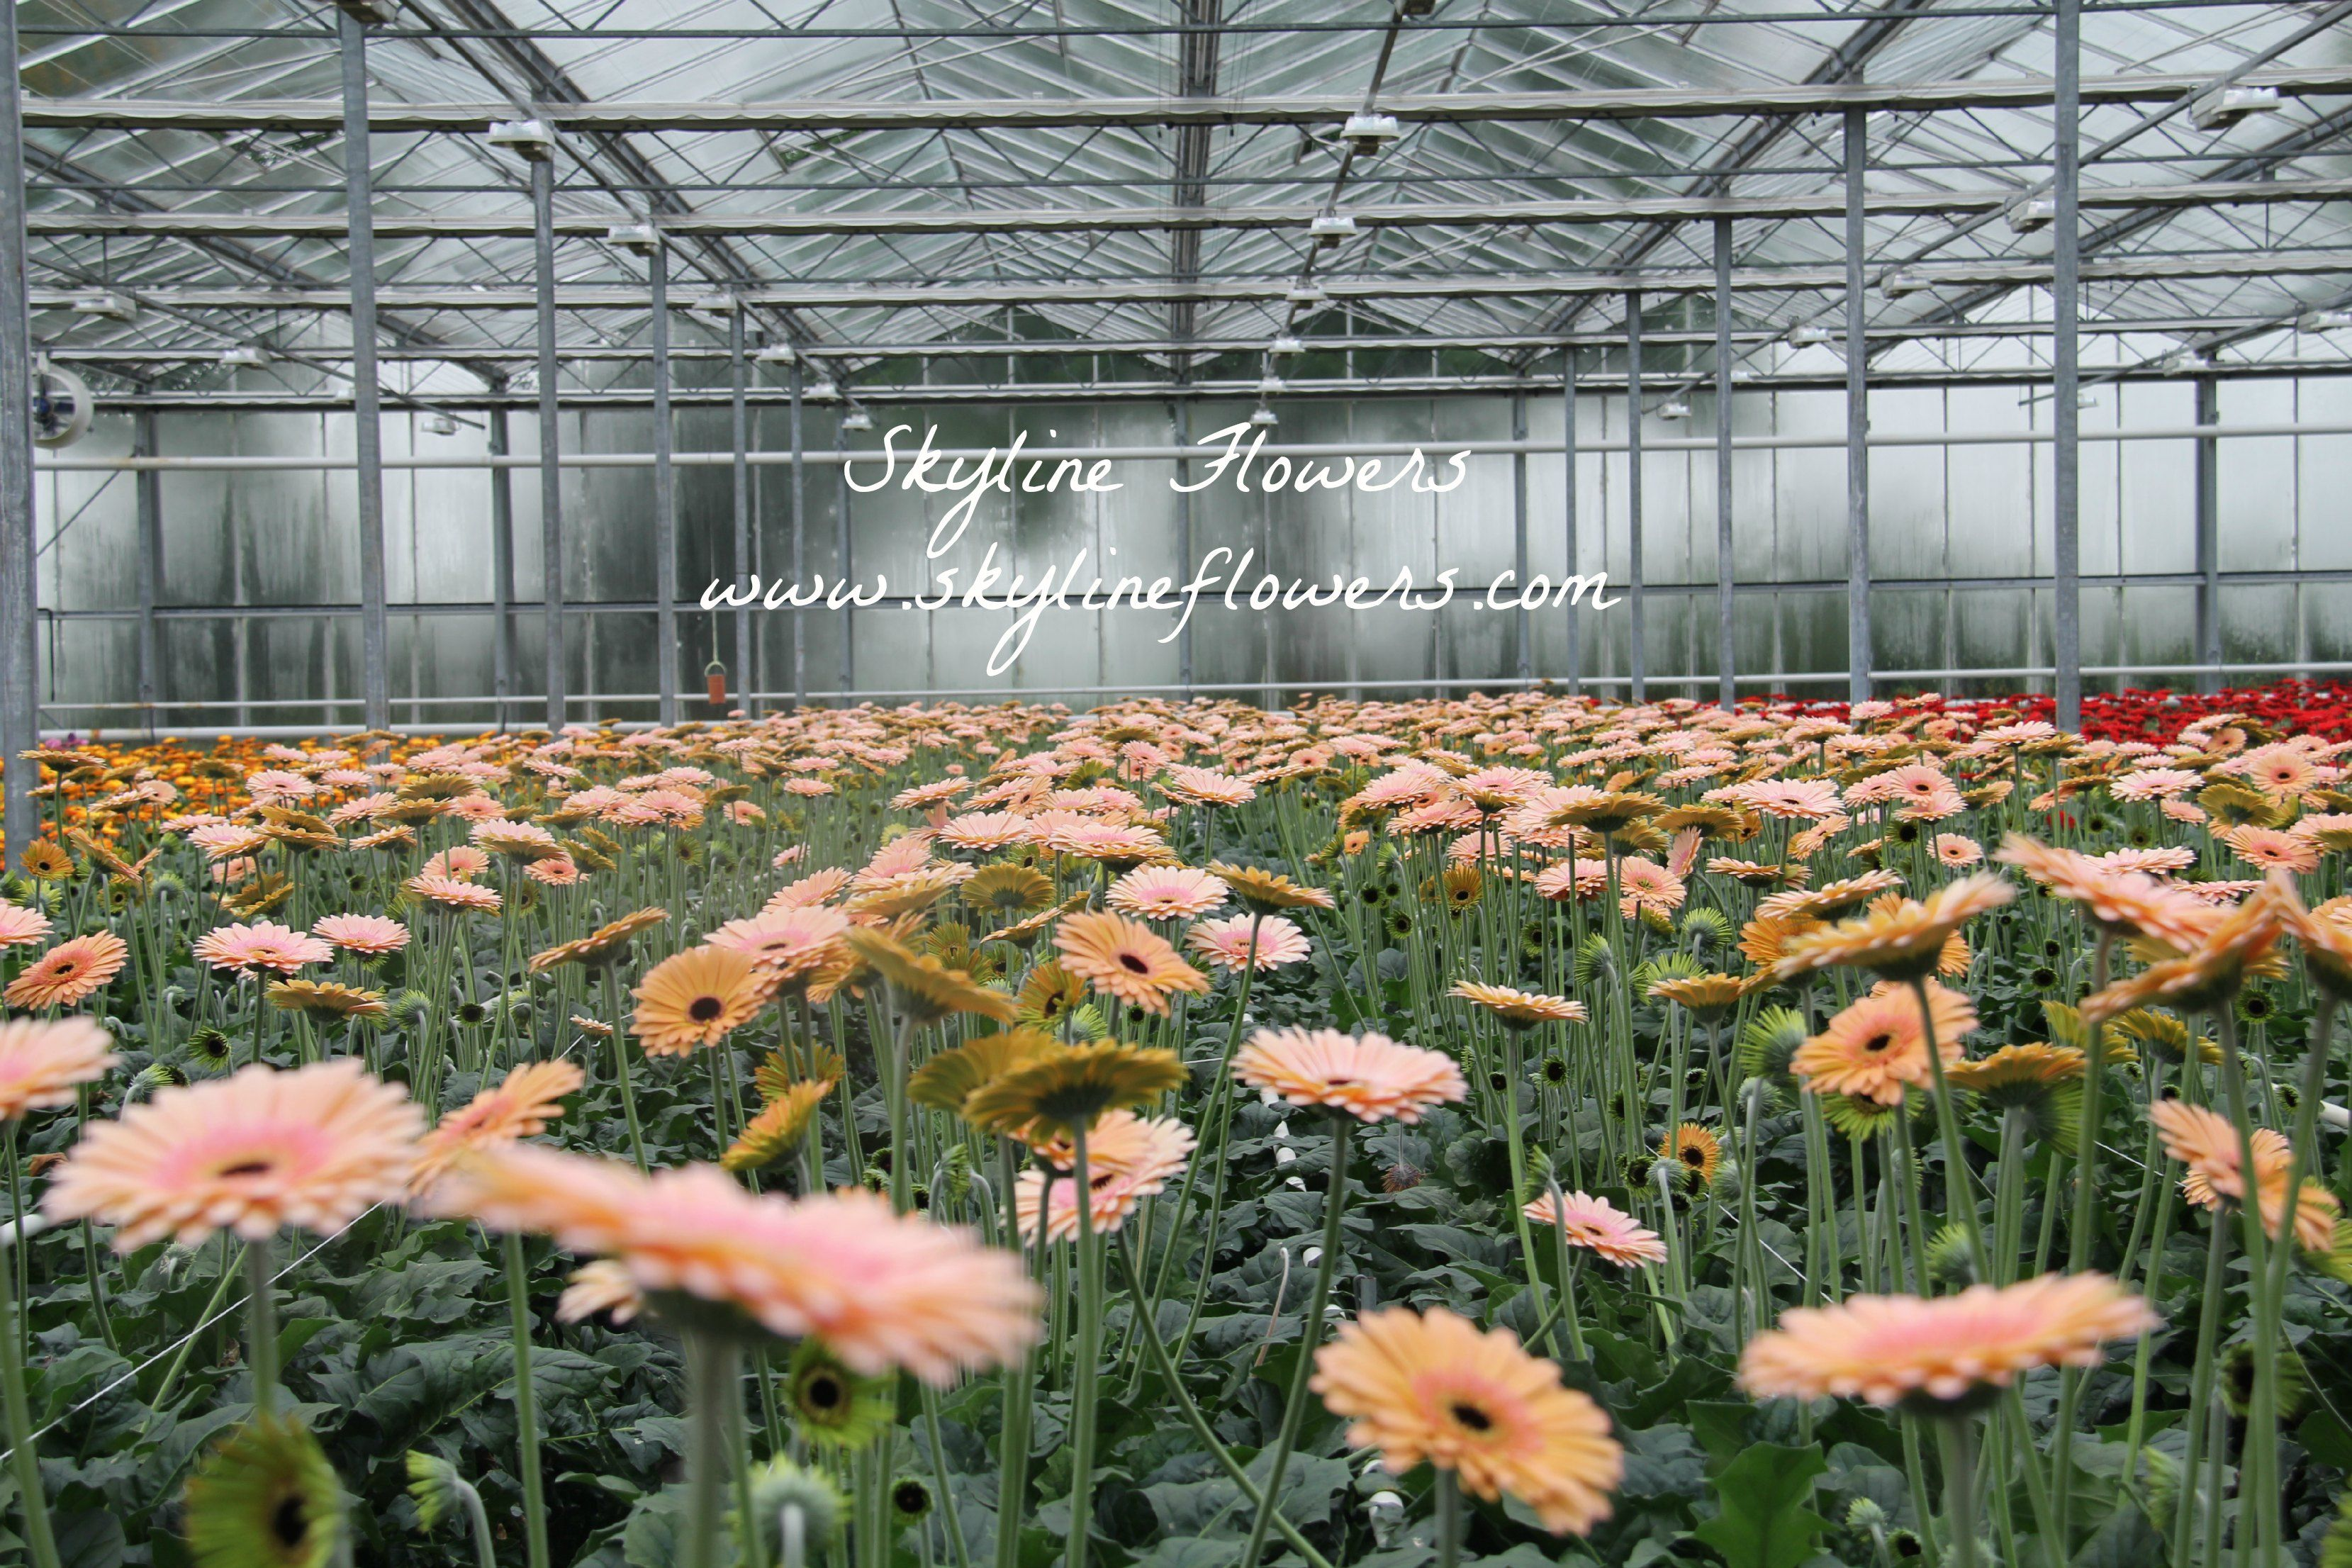 I Believe There Is Beauty In Everything A Look Inside A Gerberas Greenhouse In Holland Florist Holland B V Breeding Pro Gerbera Flowers Flower Company